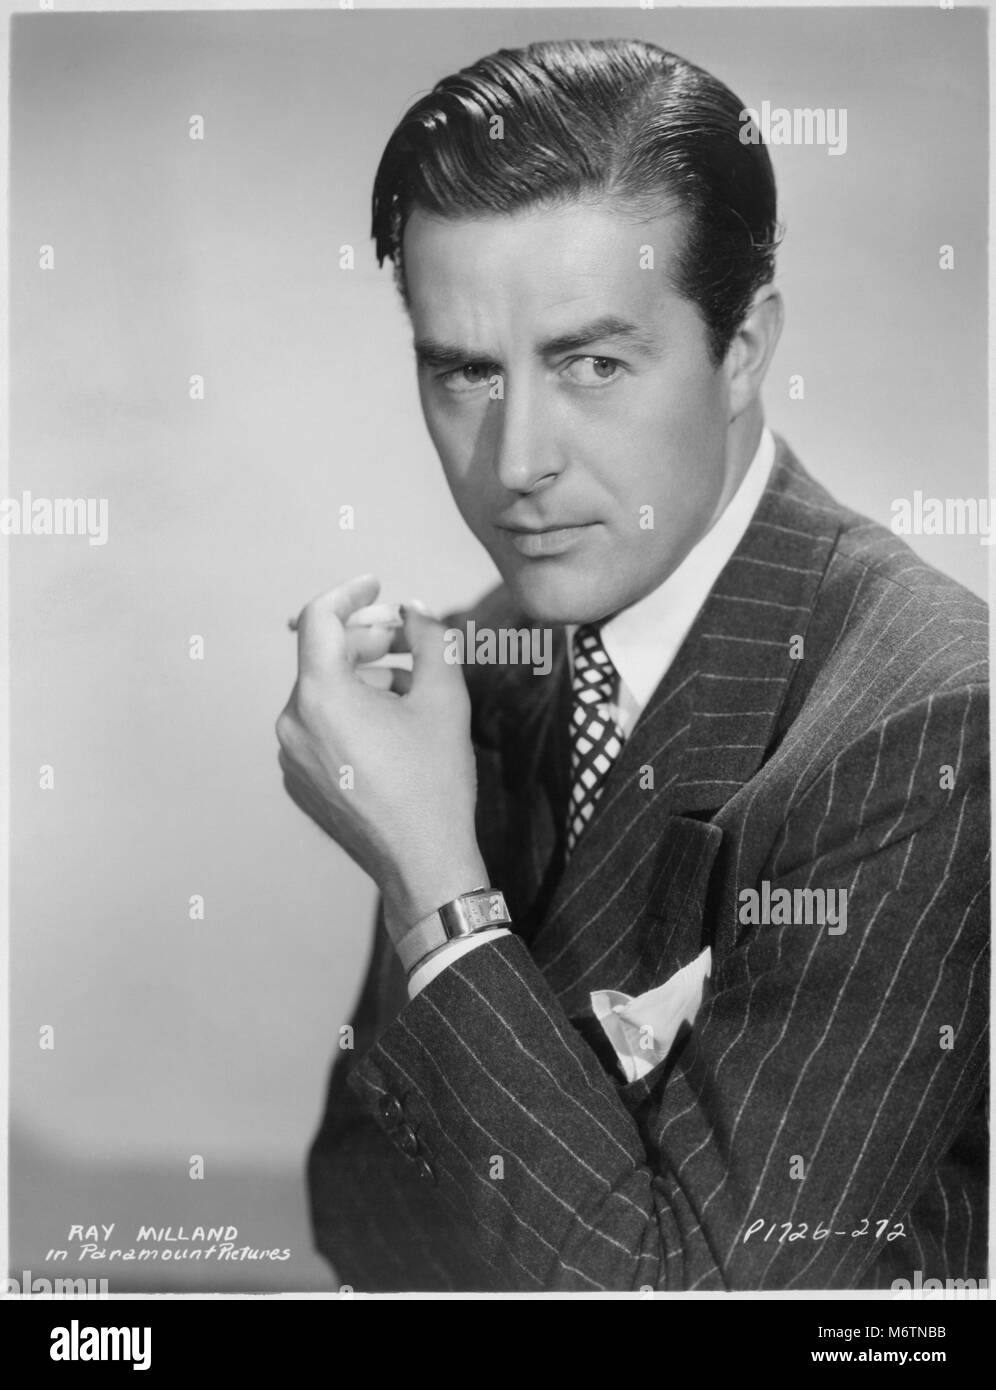 Ray Milland High Resolution Stock Photography and Images - Alamy